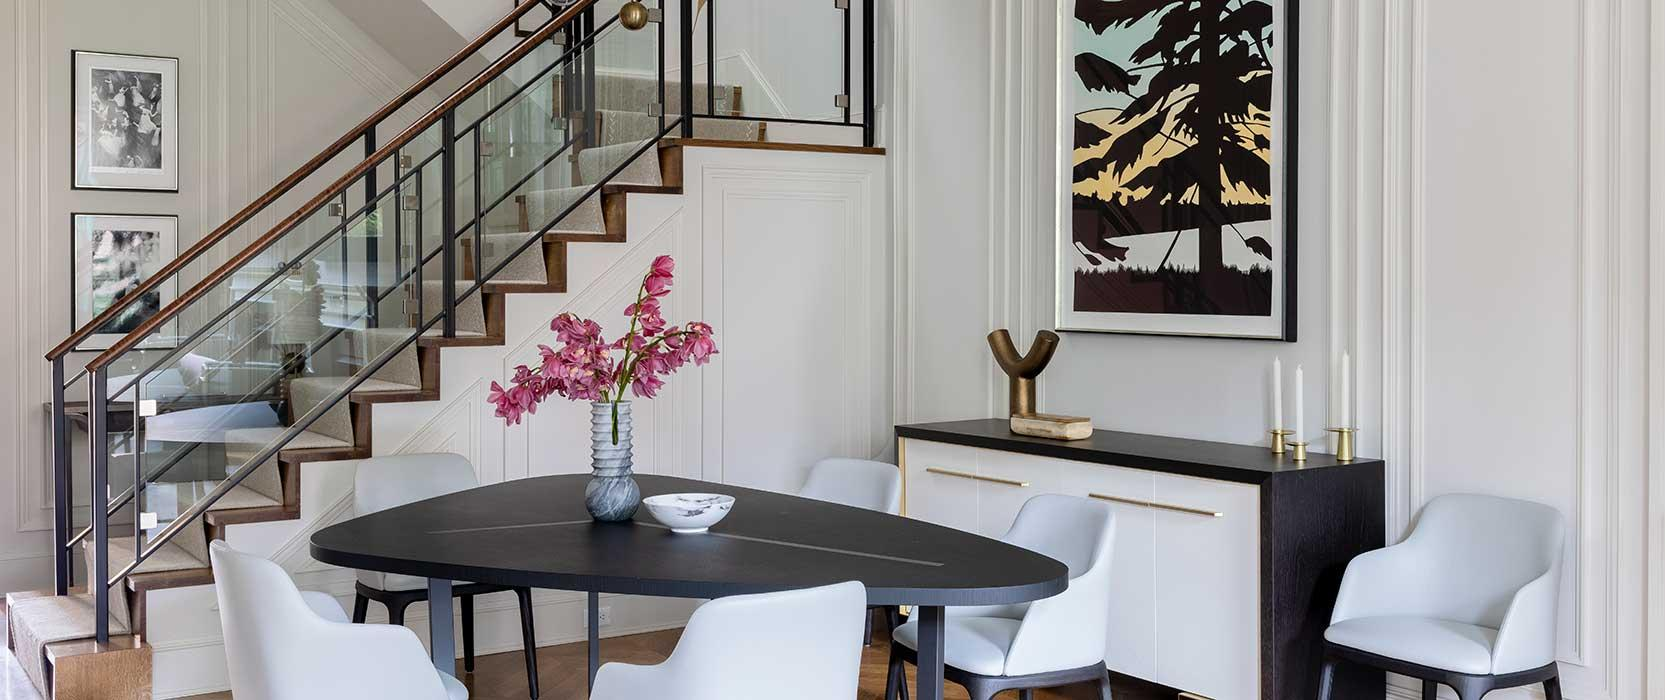 Dining table situated in front of stairs